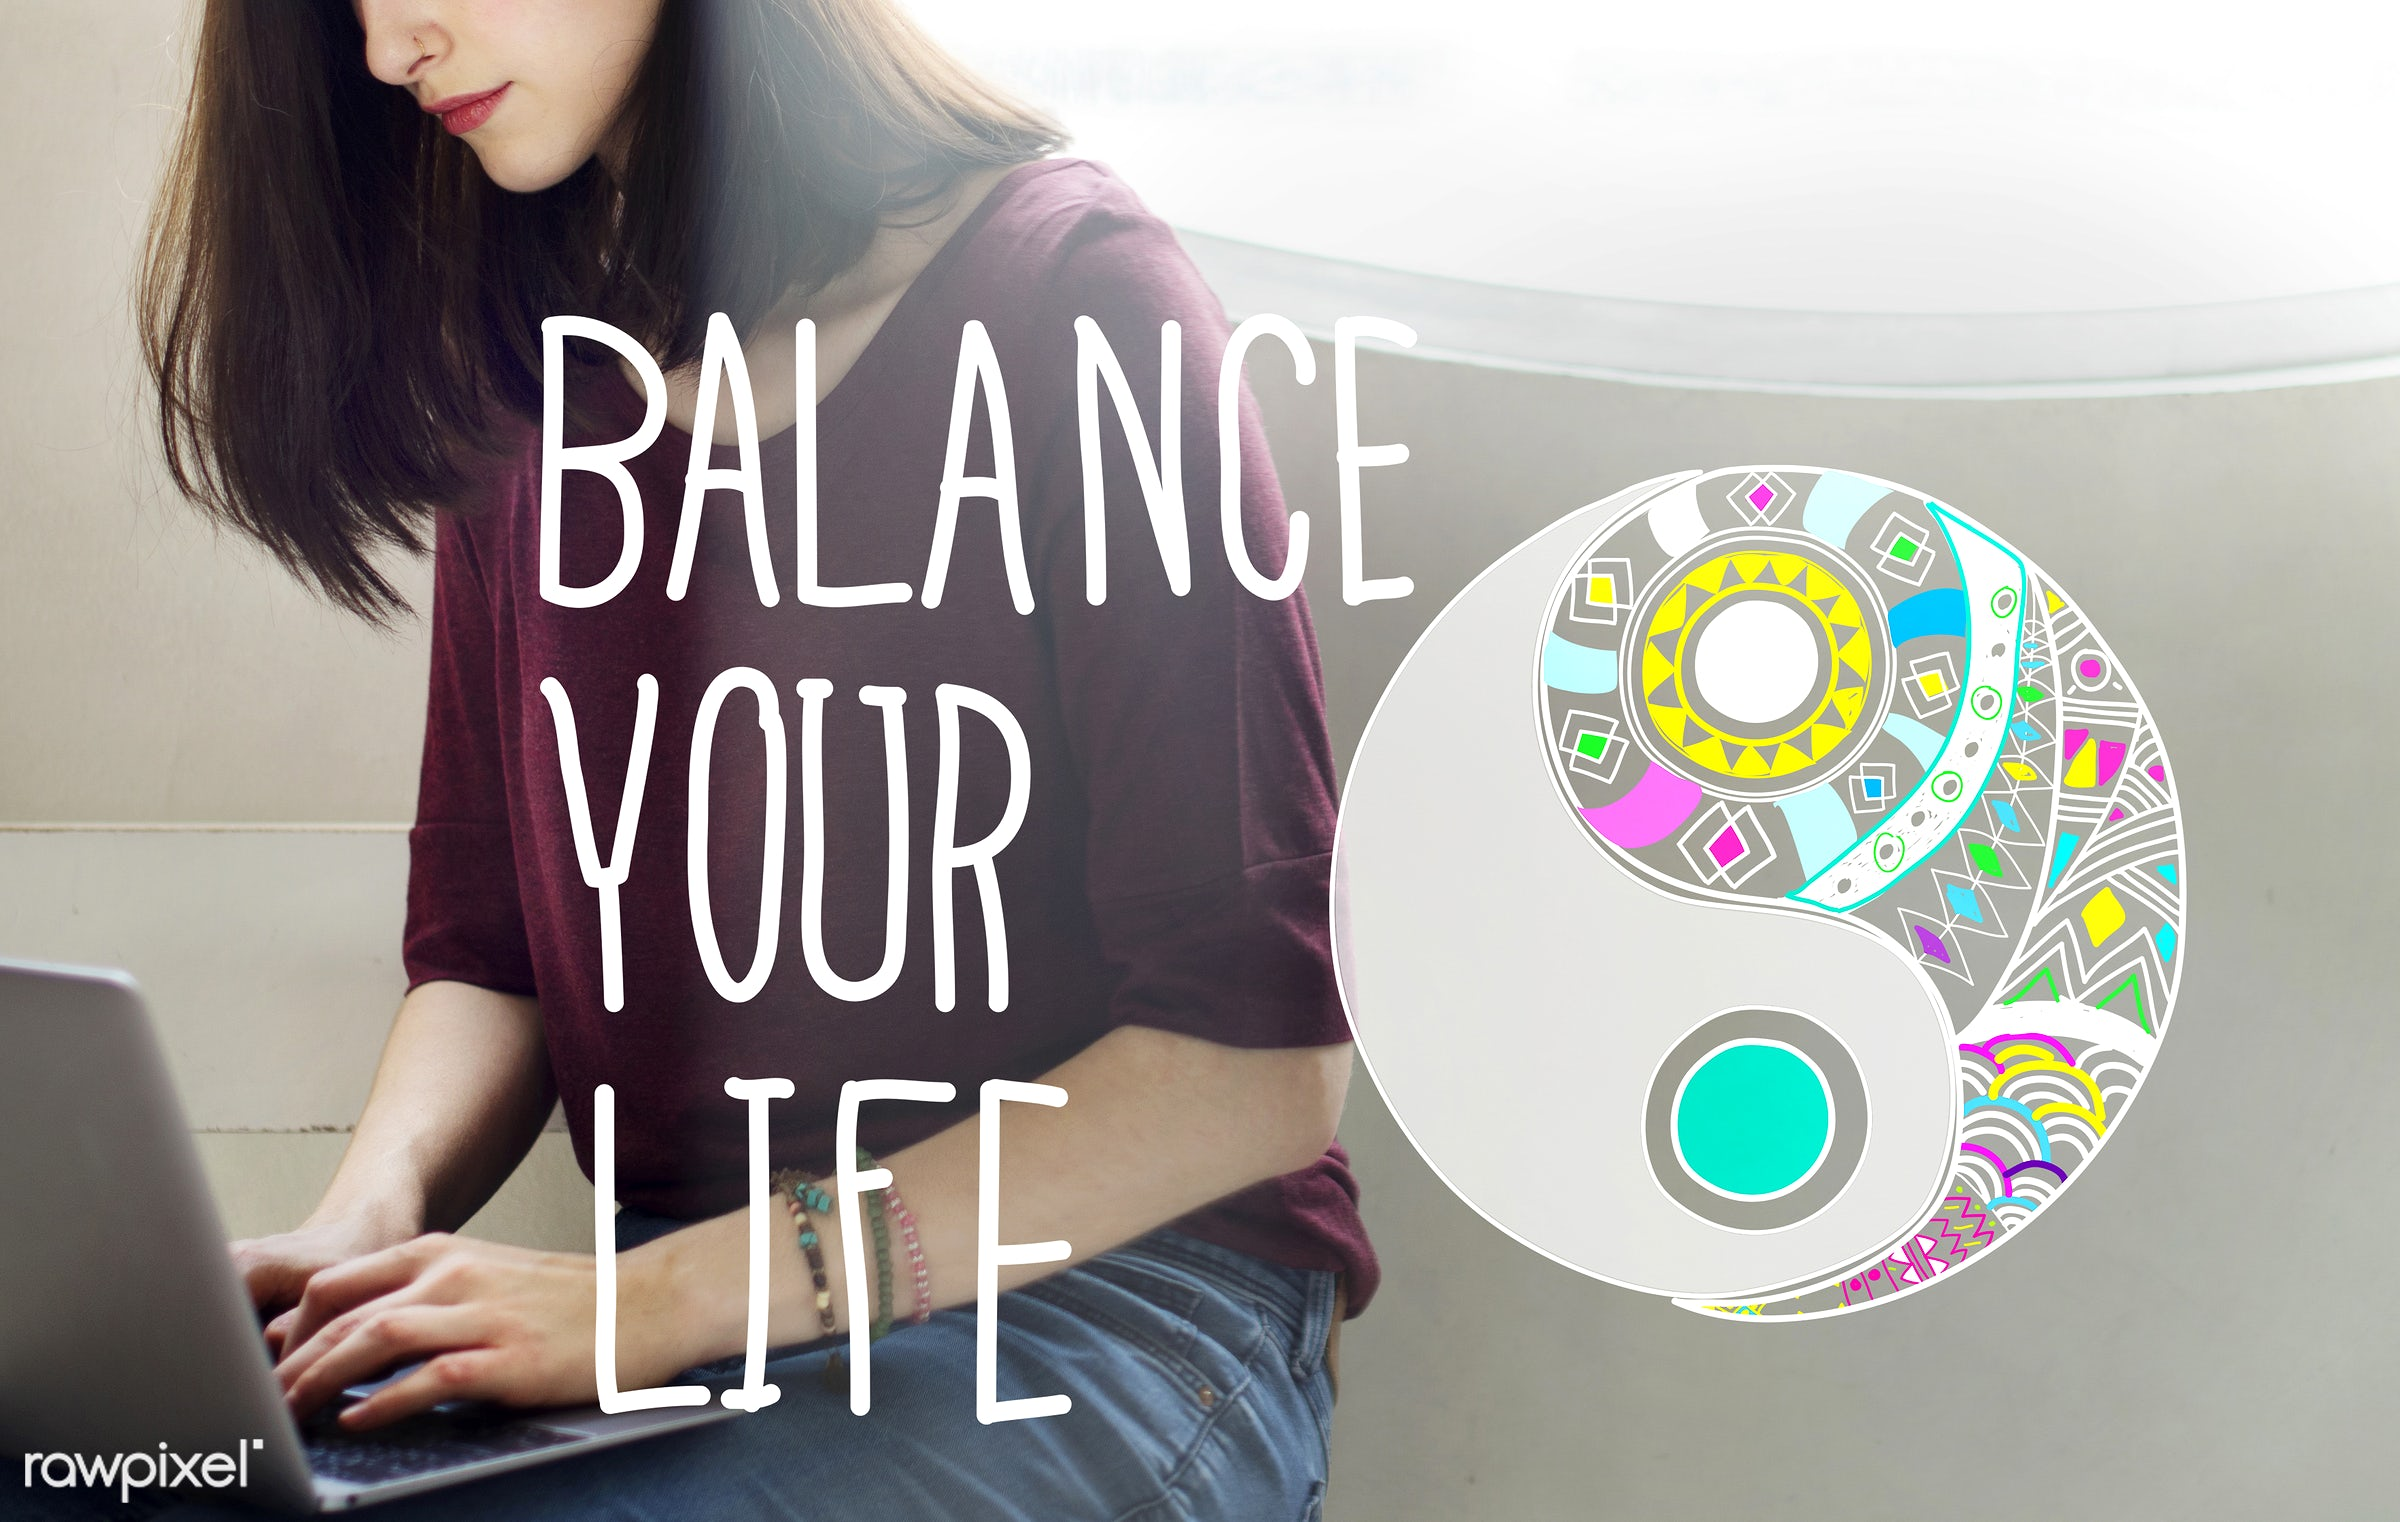 balance, balance your life, beautiful, browsing, casual, chat, concept, equal, equality, equilibration, equivalence, fitness...